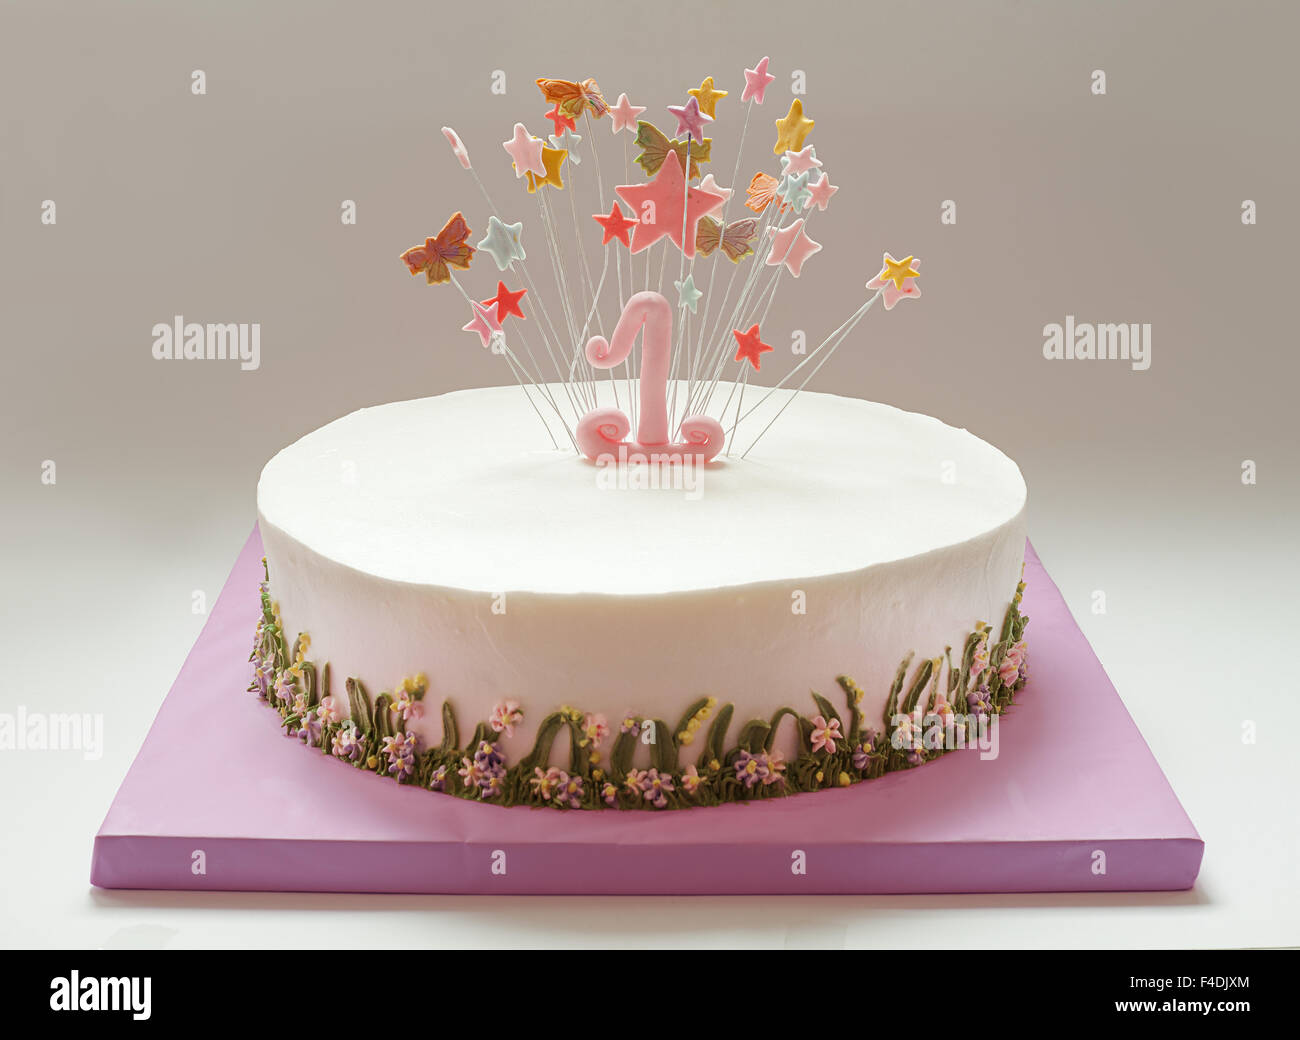 Birthday cake with number one and stars on top. - Stock Image